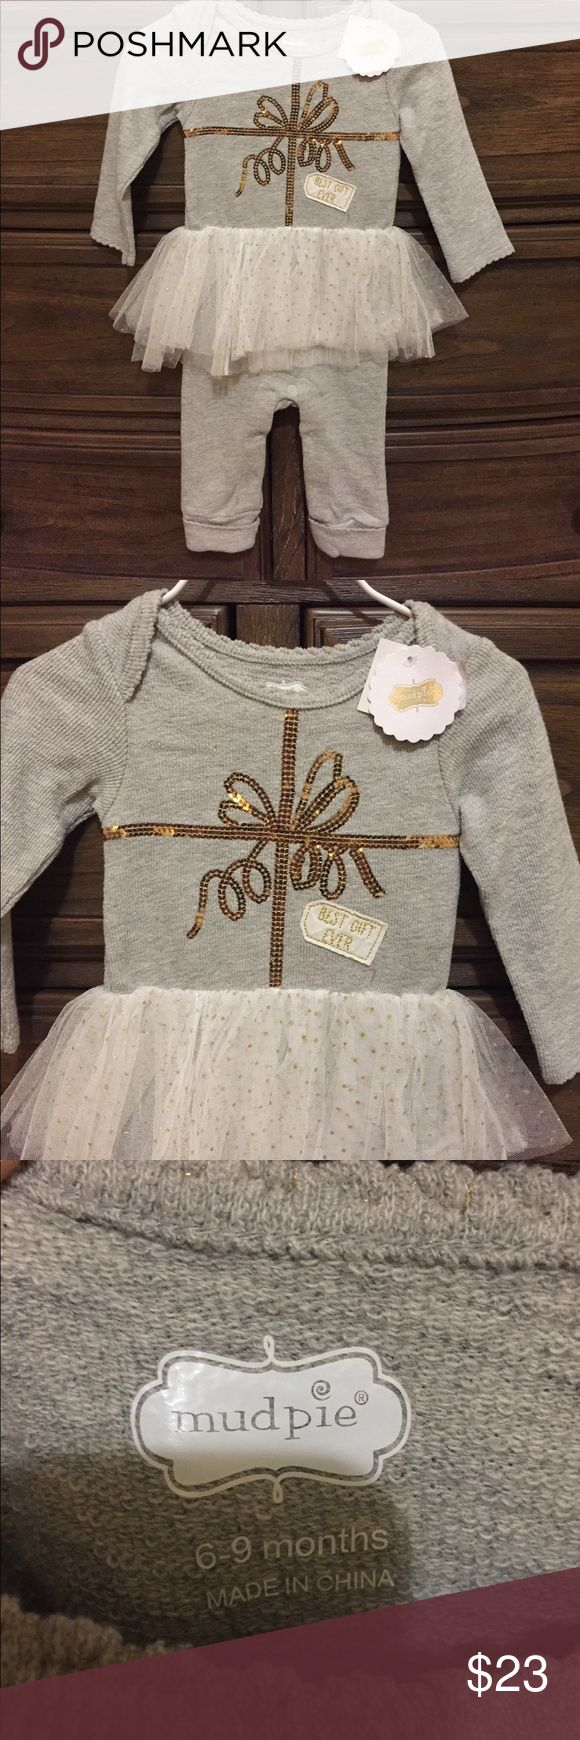 """MUD PIE OUTFIT 🎀 New With Tags 🎀 Mud Pie """"Best Gift Ever"""" 6-9 months  Smoke and Pet Free 🏡 Fast Shipping  Bundle and Save 💰 Mud Pie One Pieces Bodysuits"""